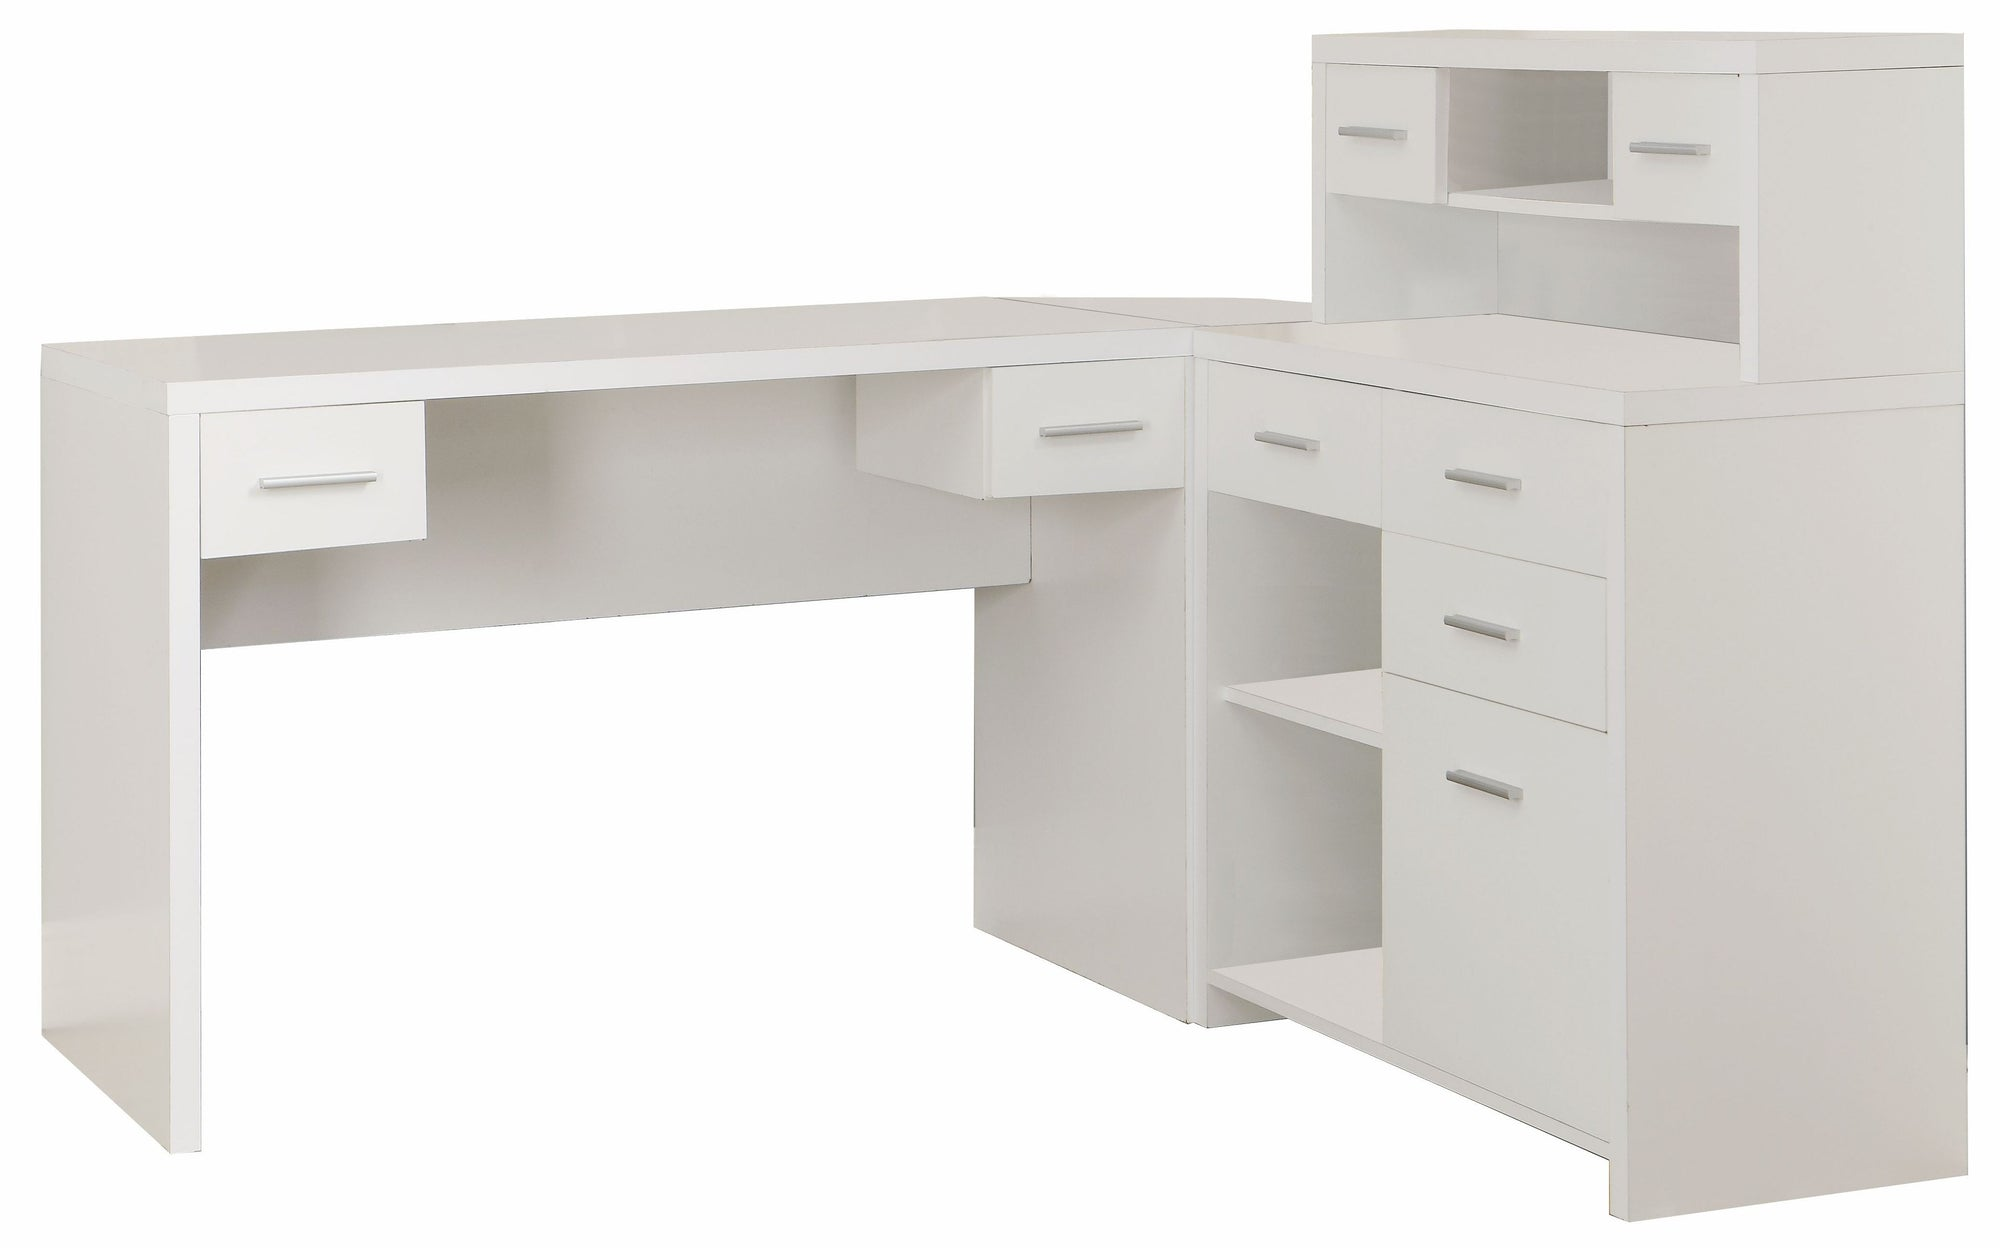 62 5 L Shaped Desk With Storage By Monarch Officedesk Com